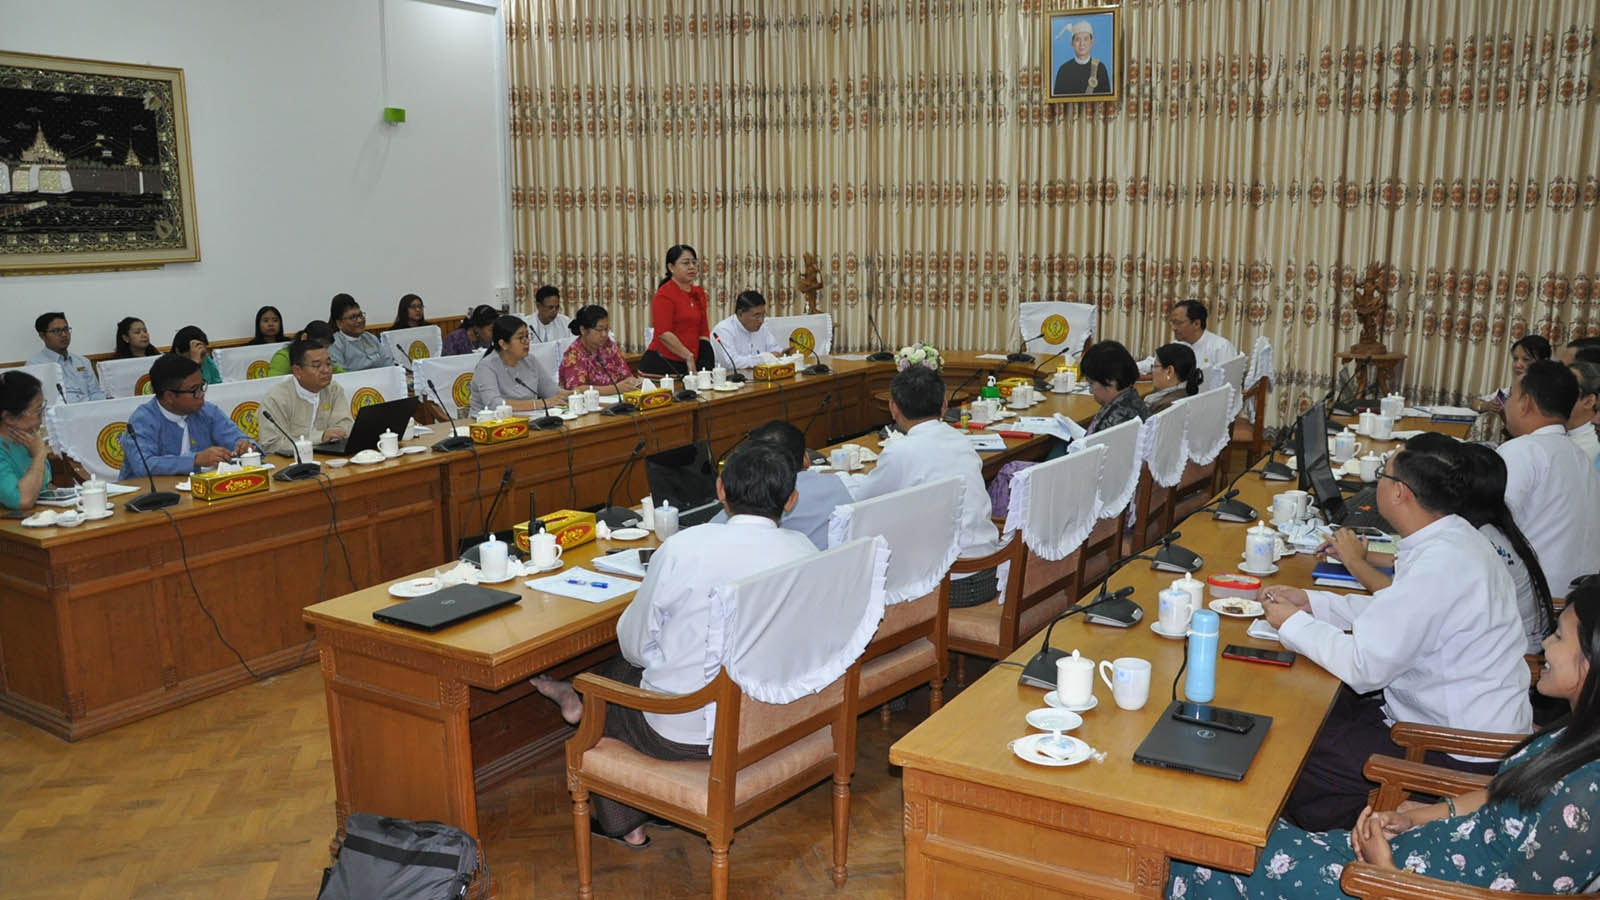 The daily meeting of the Ministry of Health and Sports is in progress at its office in Nay Pyi Taw yesterday. Photo: MNA